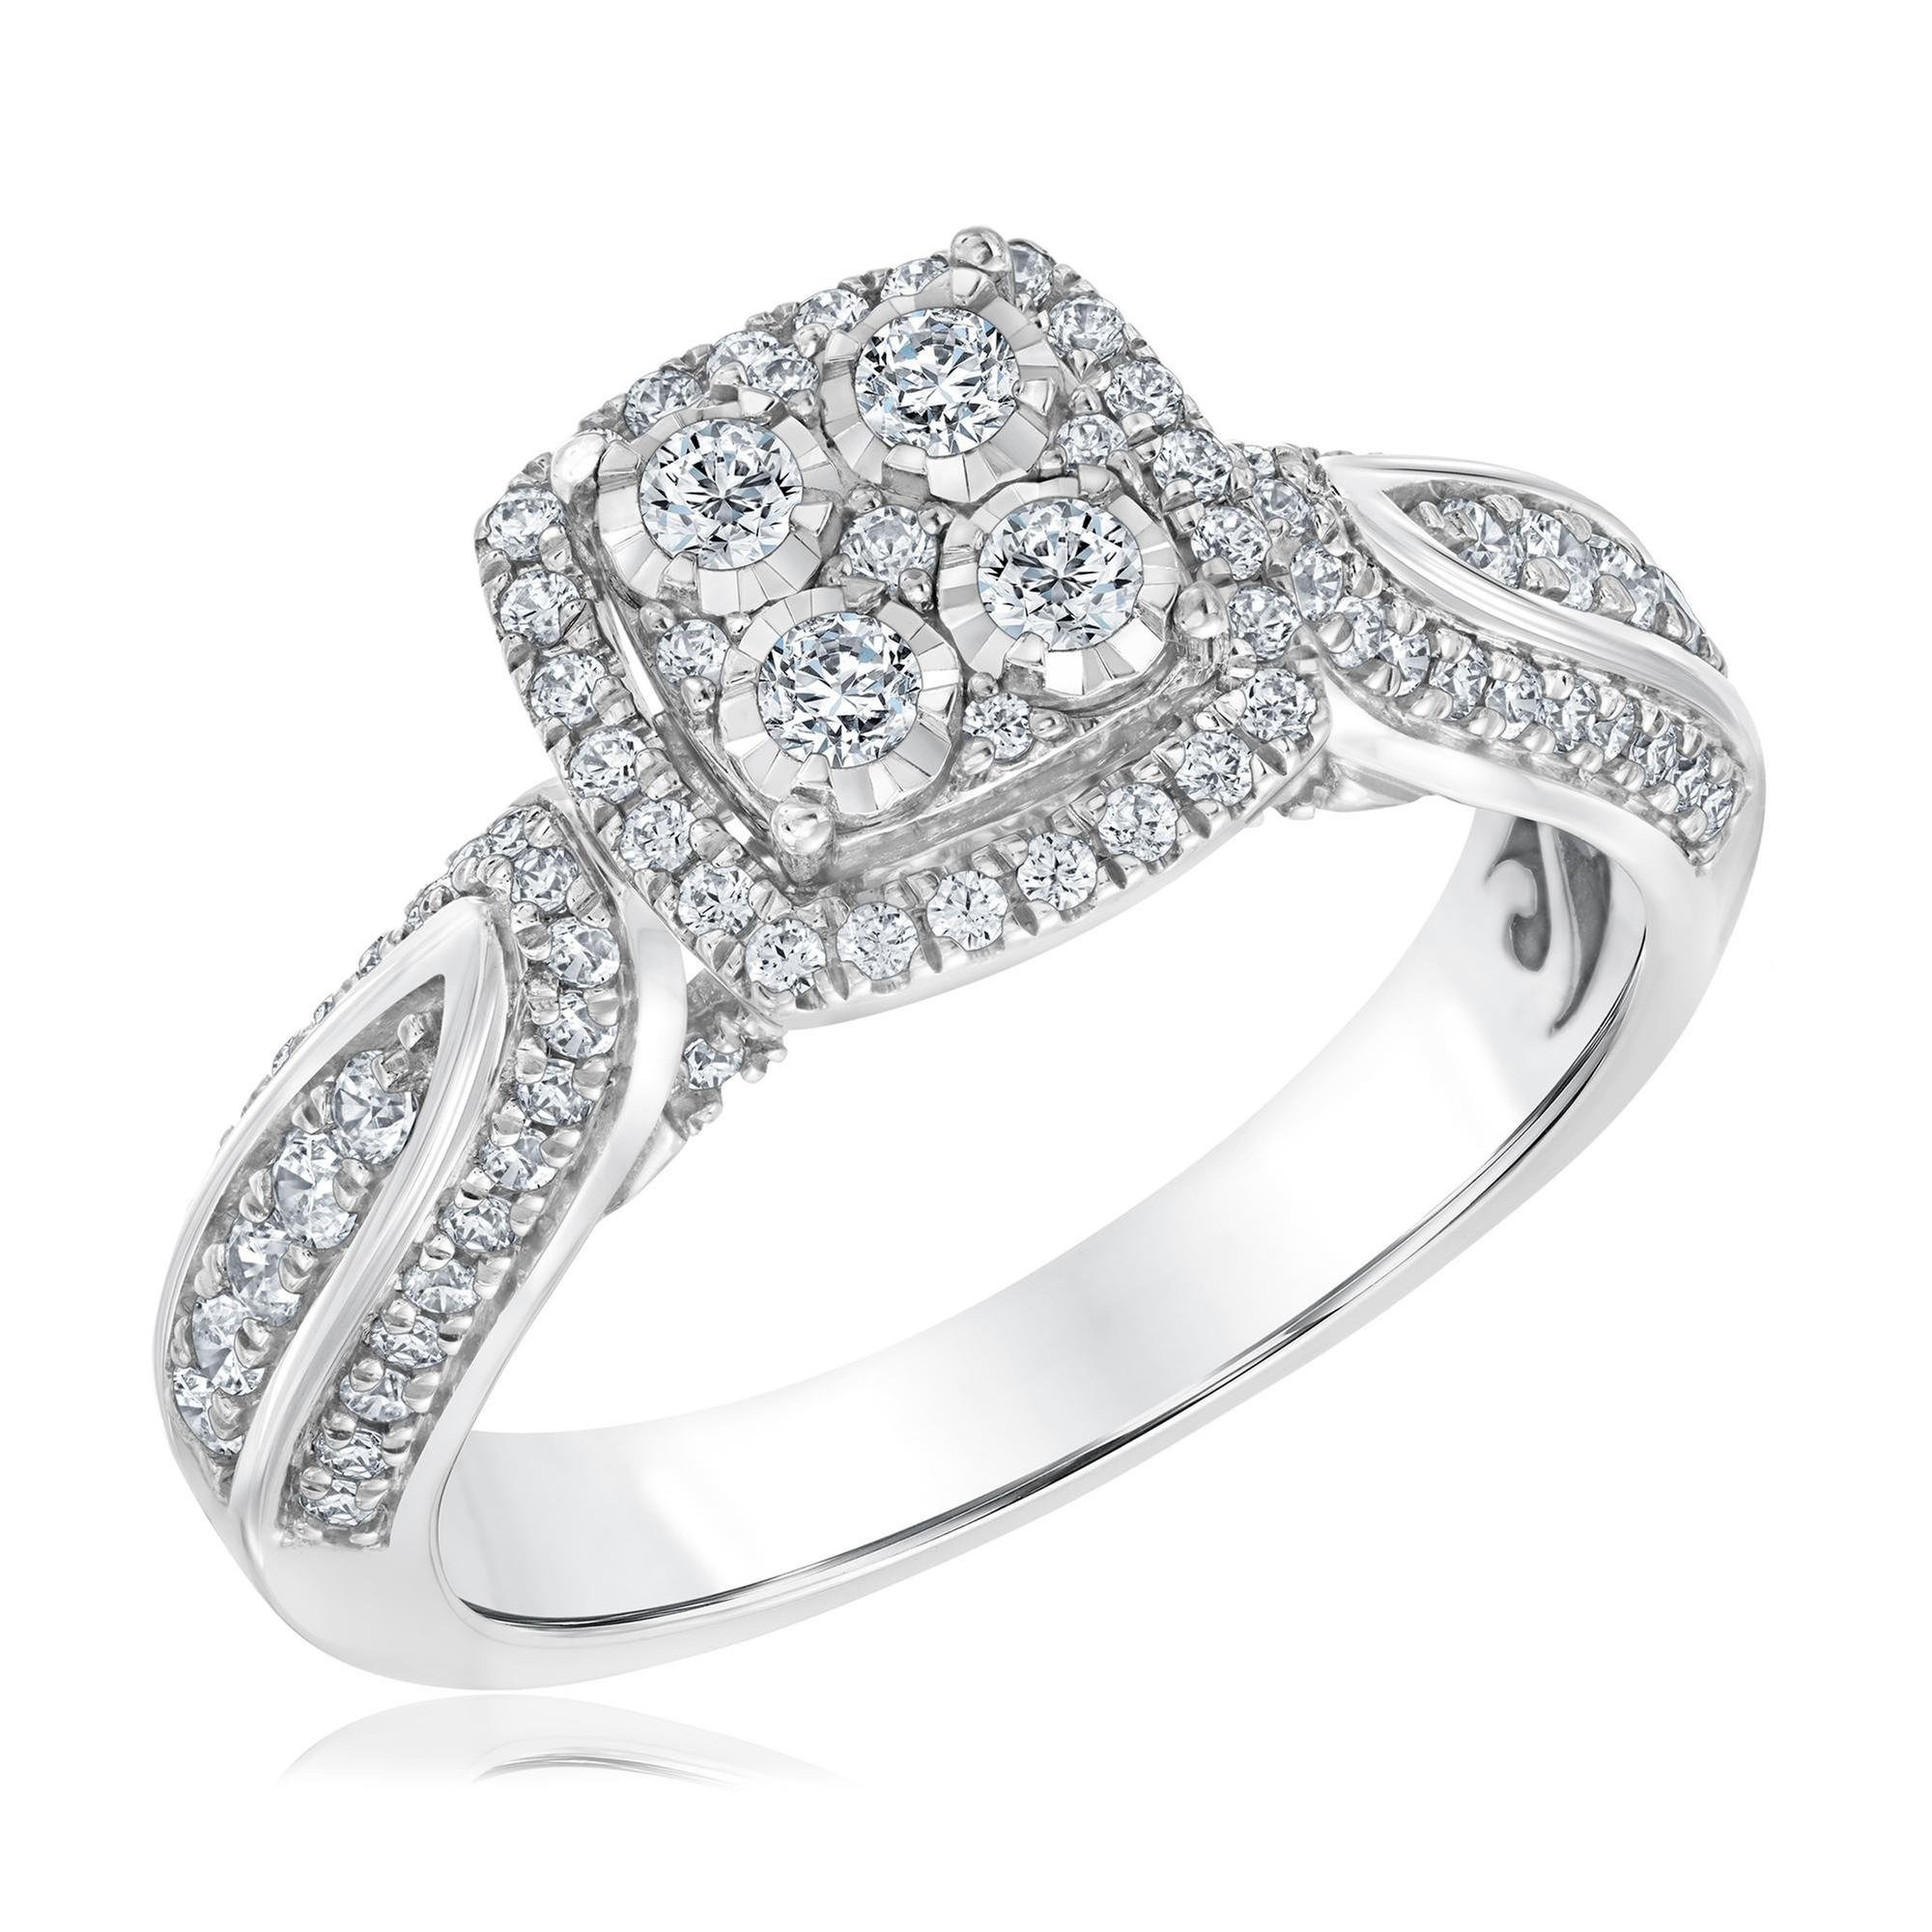 Multi-Top Miracle Plated Diamond Engagement Ring 3/4ctw - Size 7